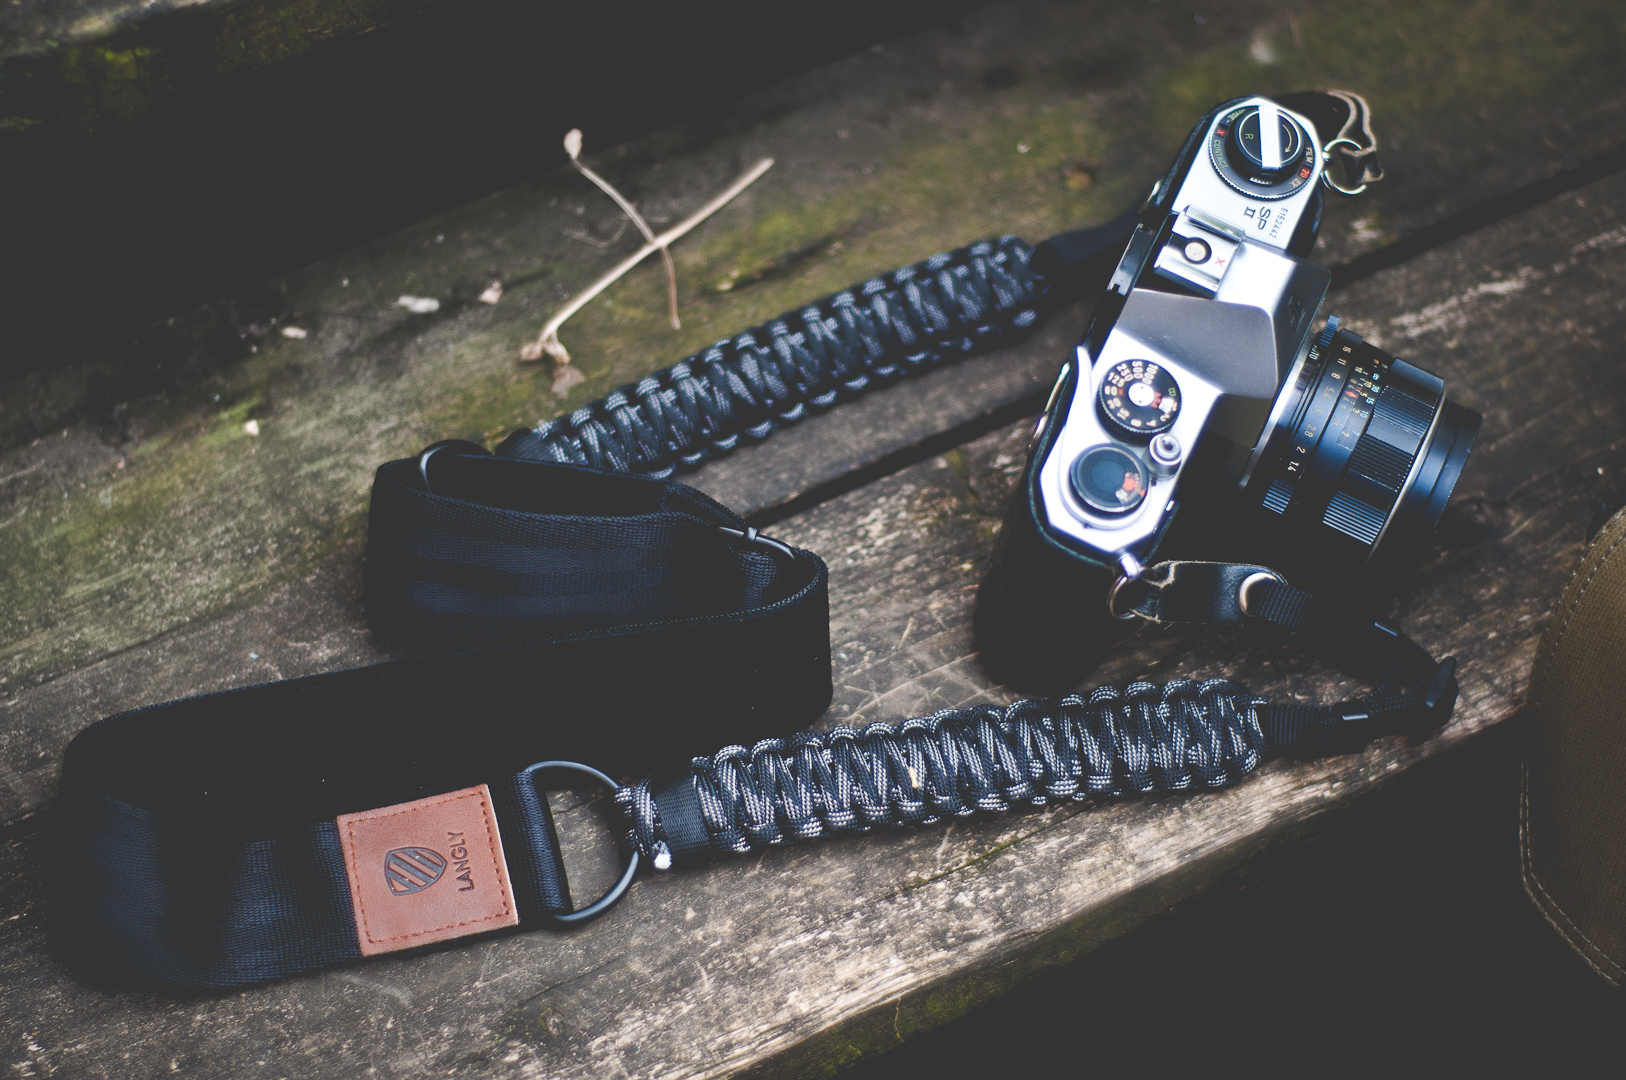 langly paracord strap